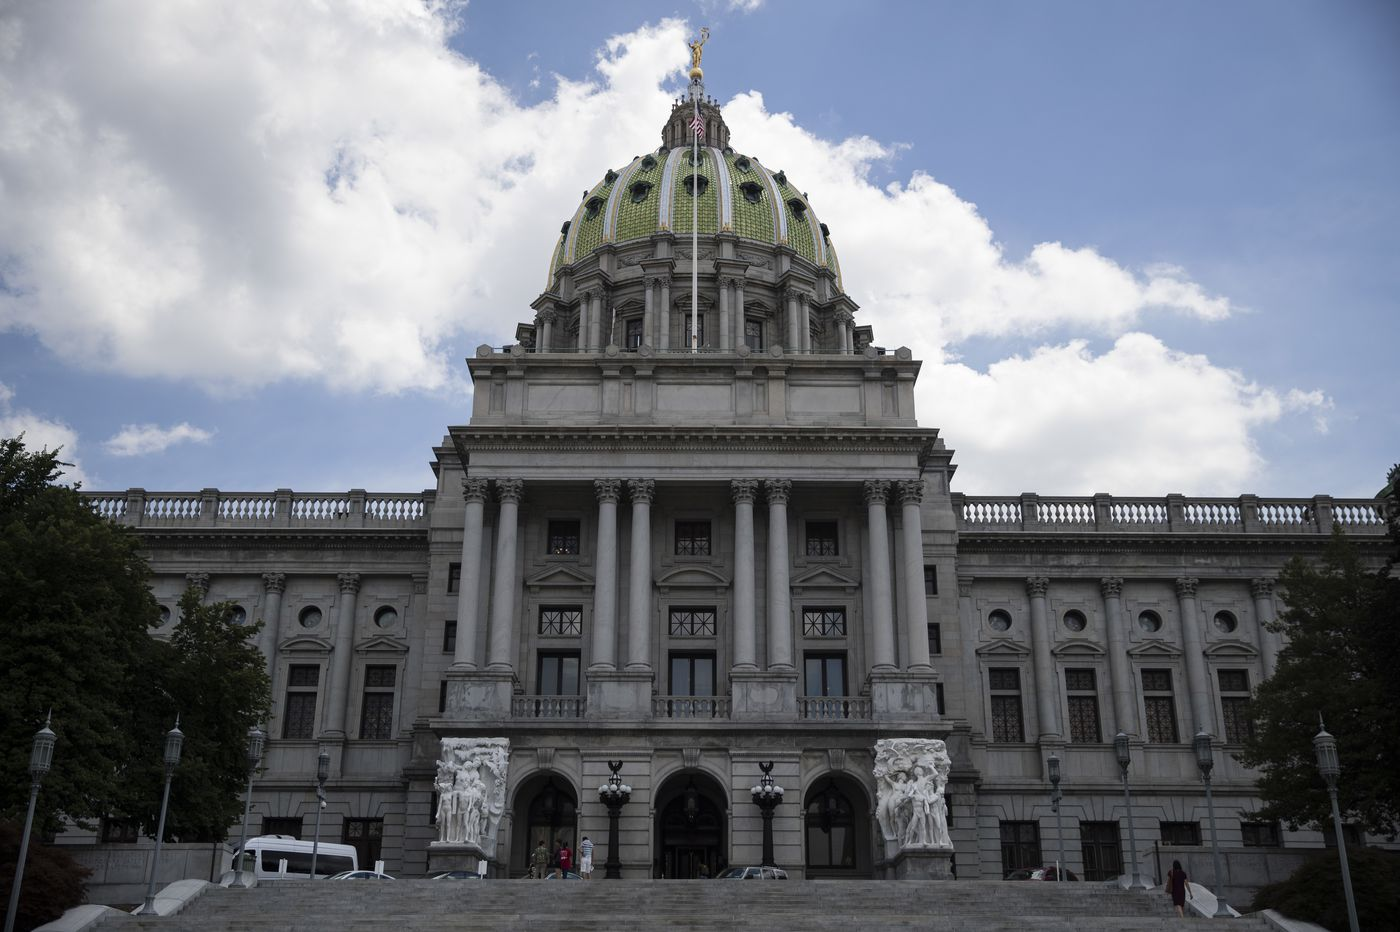 Inquirer, Pittsburgh Post-Gazette, and The Caucus join forces to cover Harrisburg state capitol